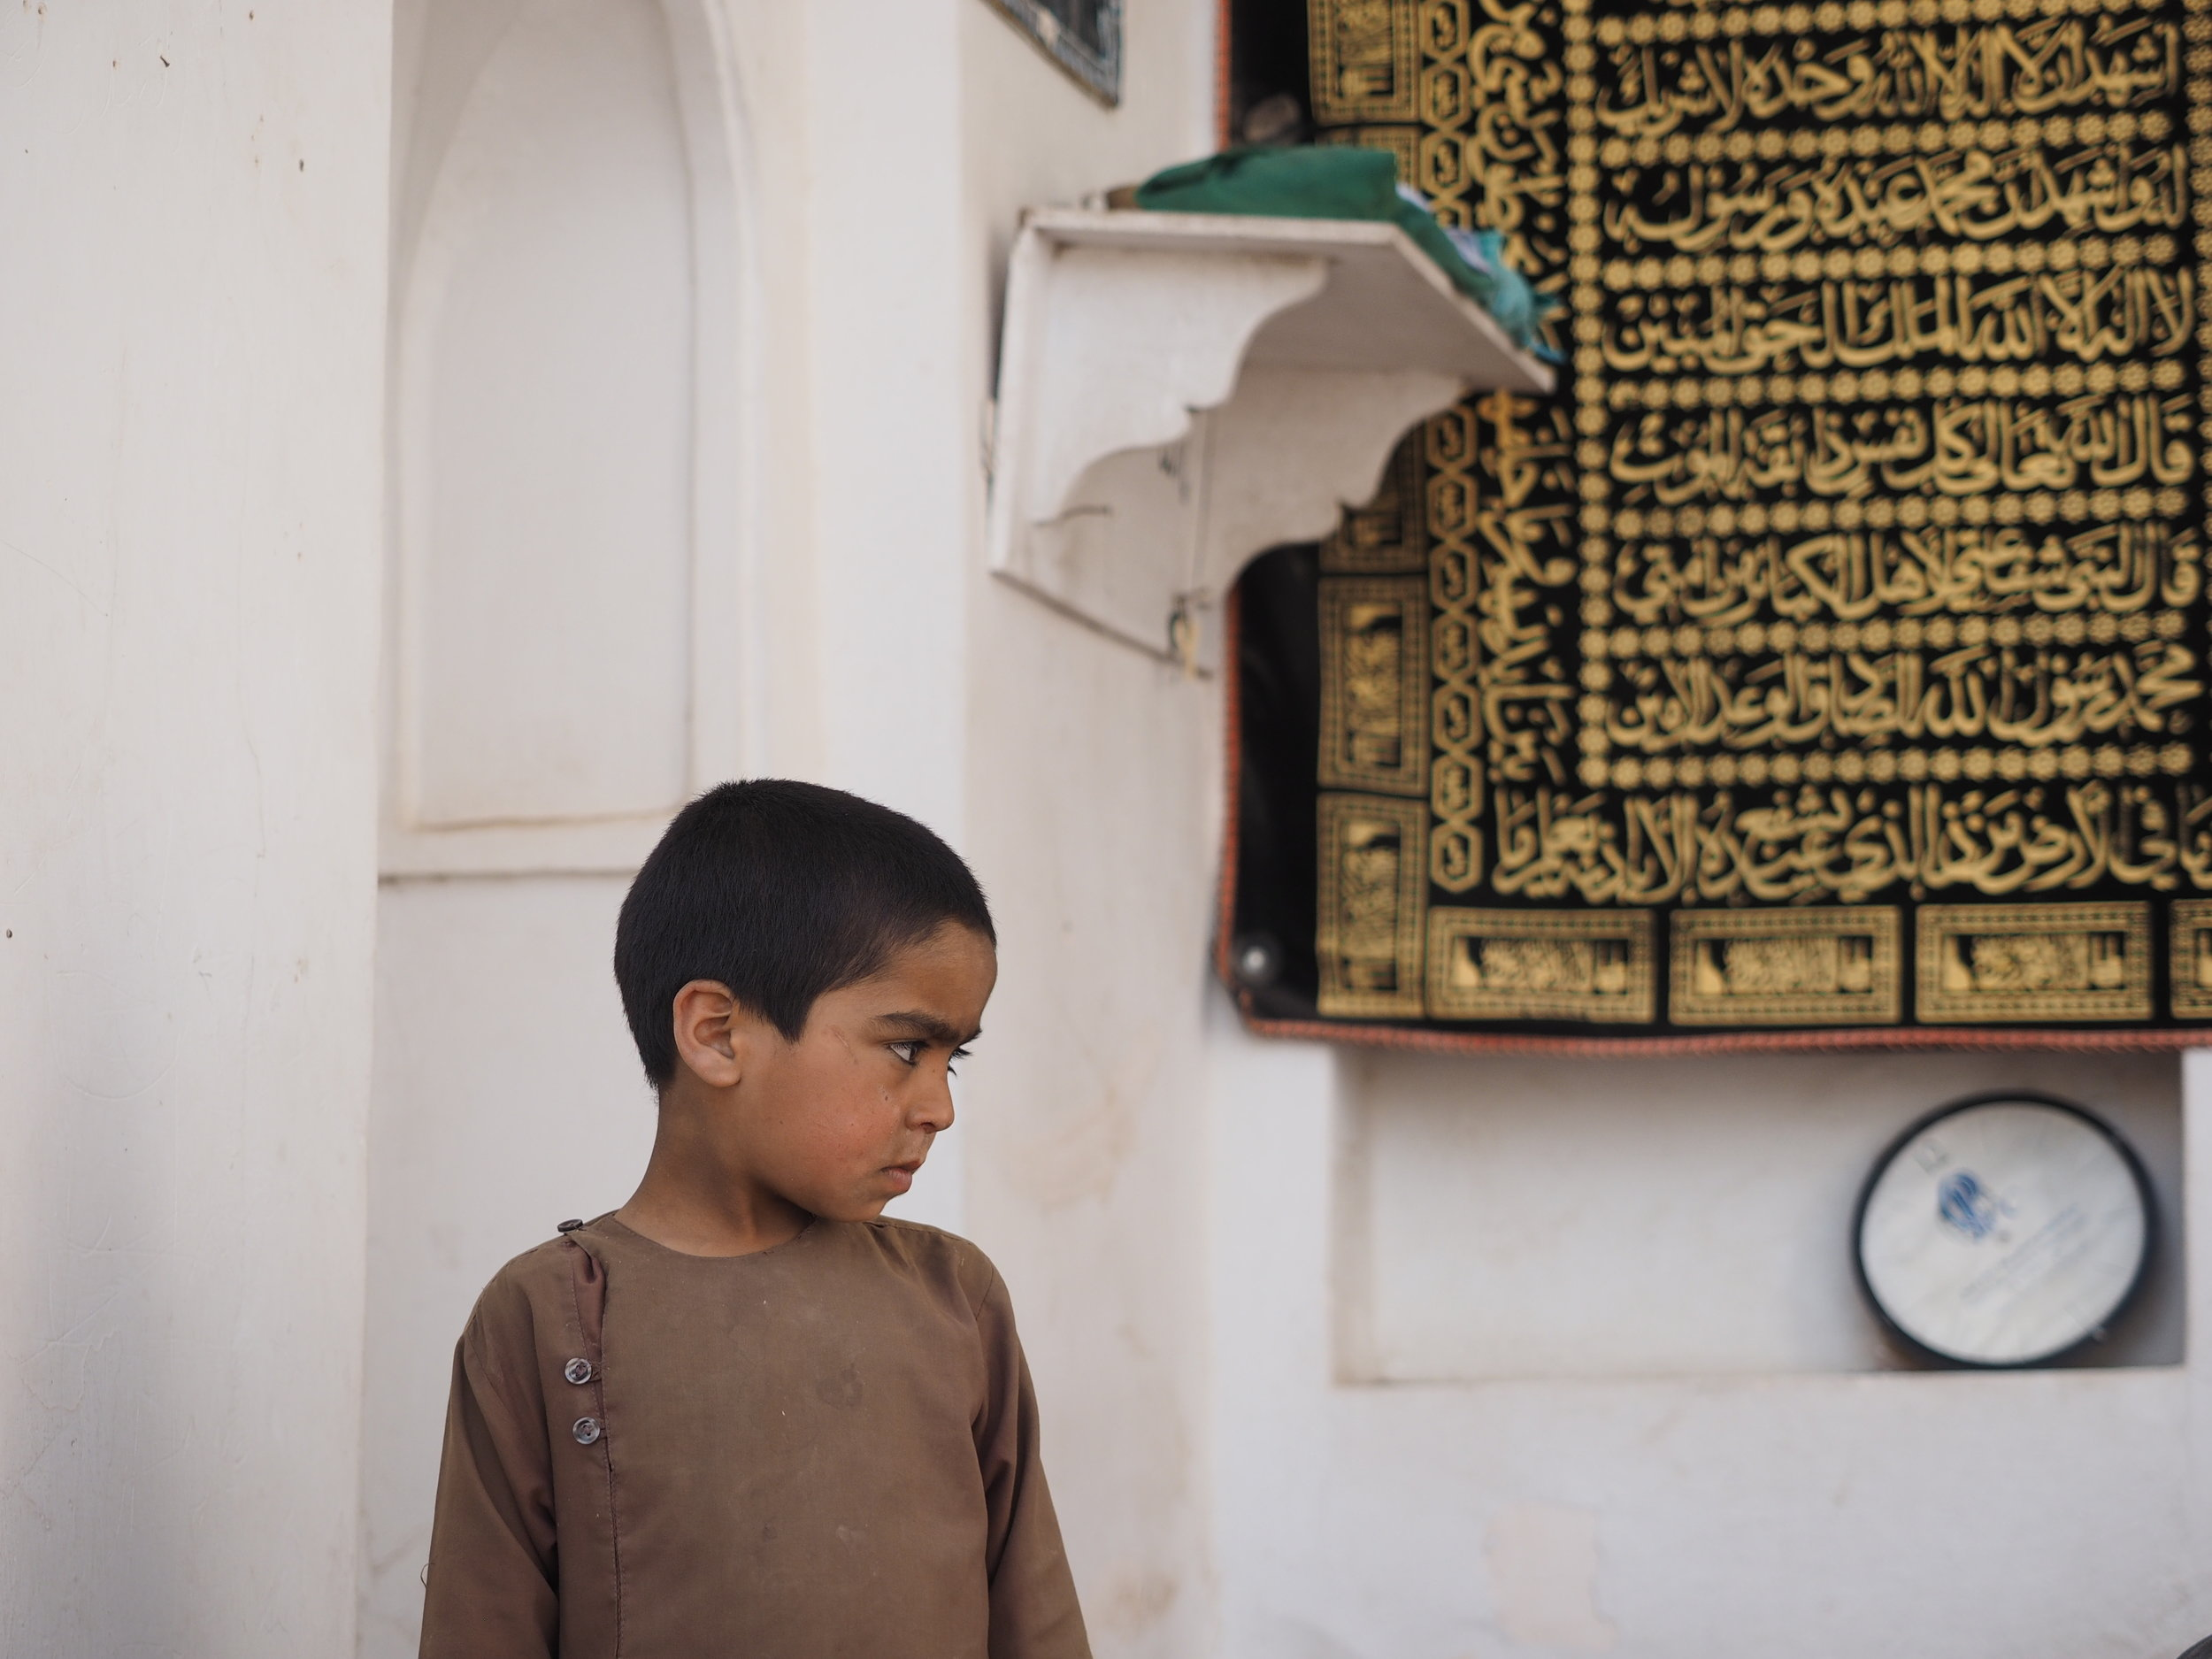 A child begging outside a mosque.